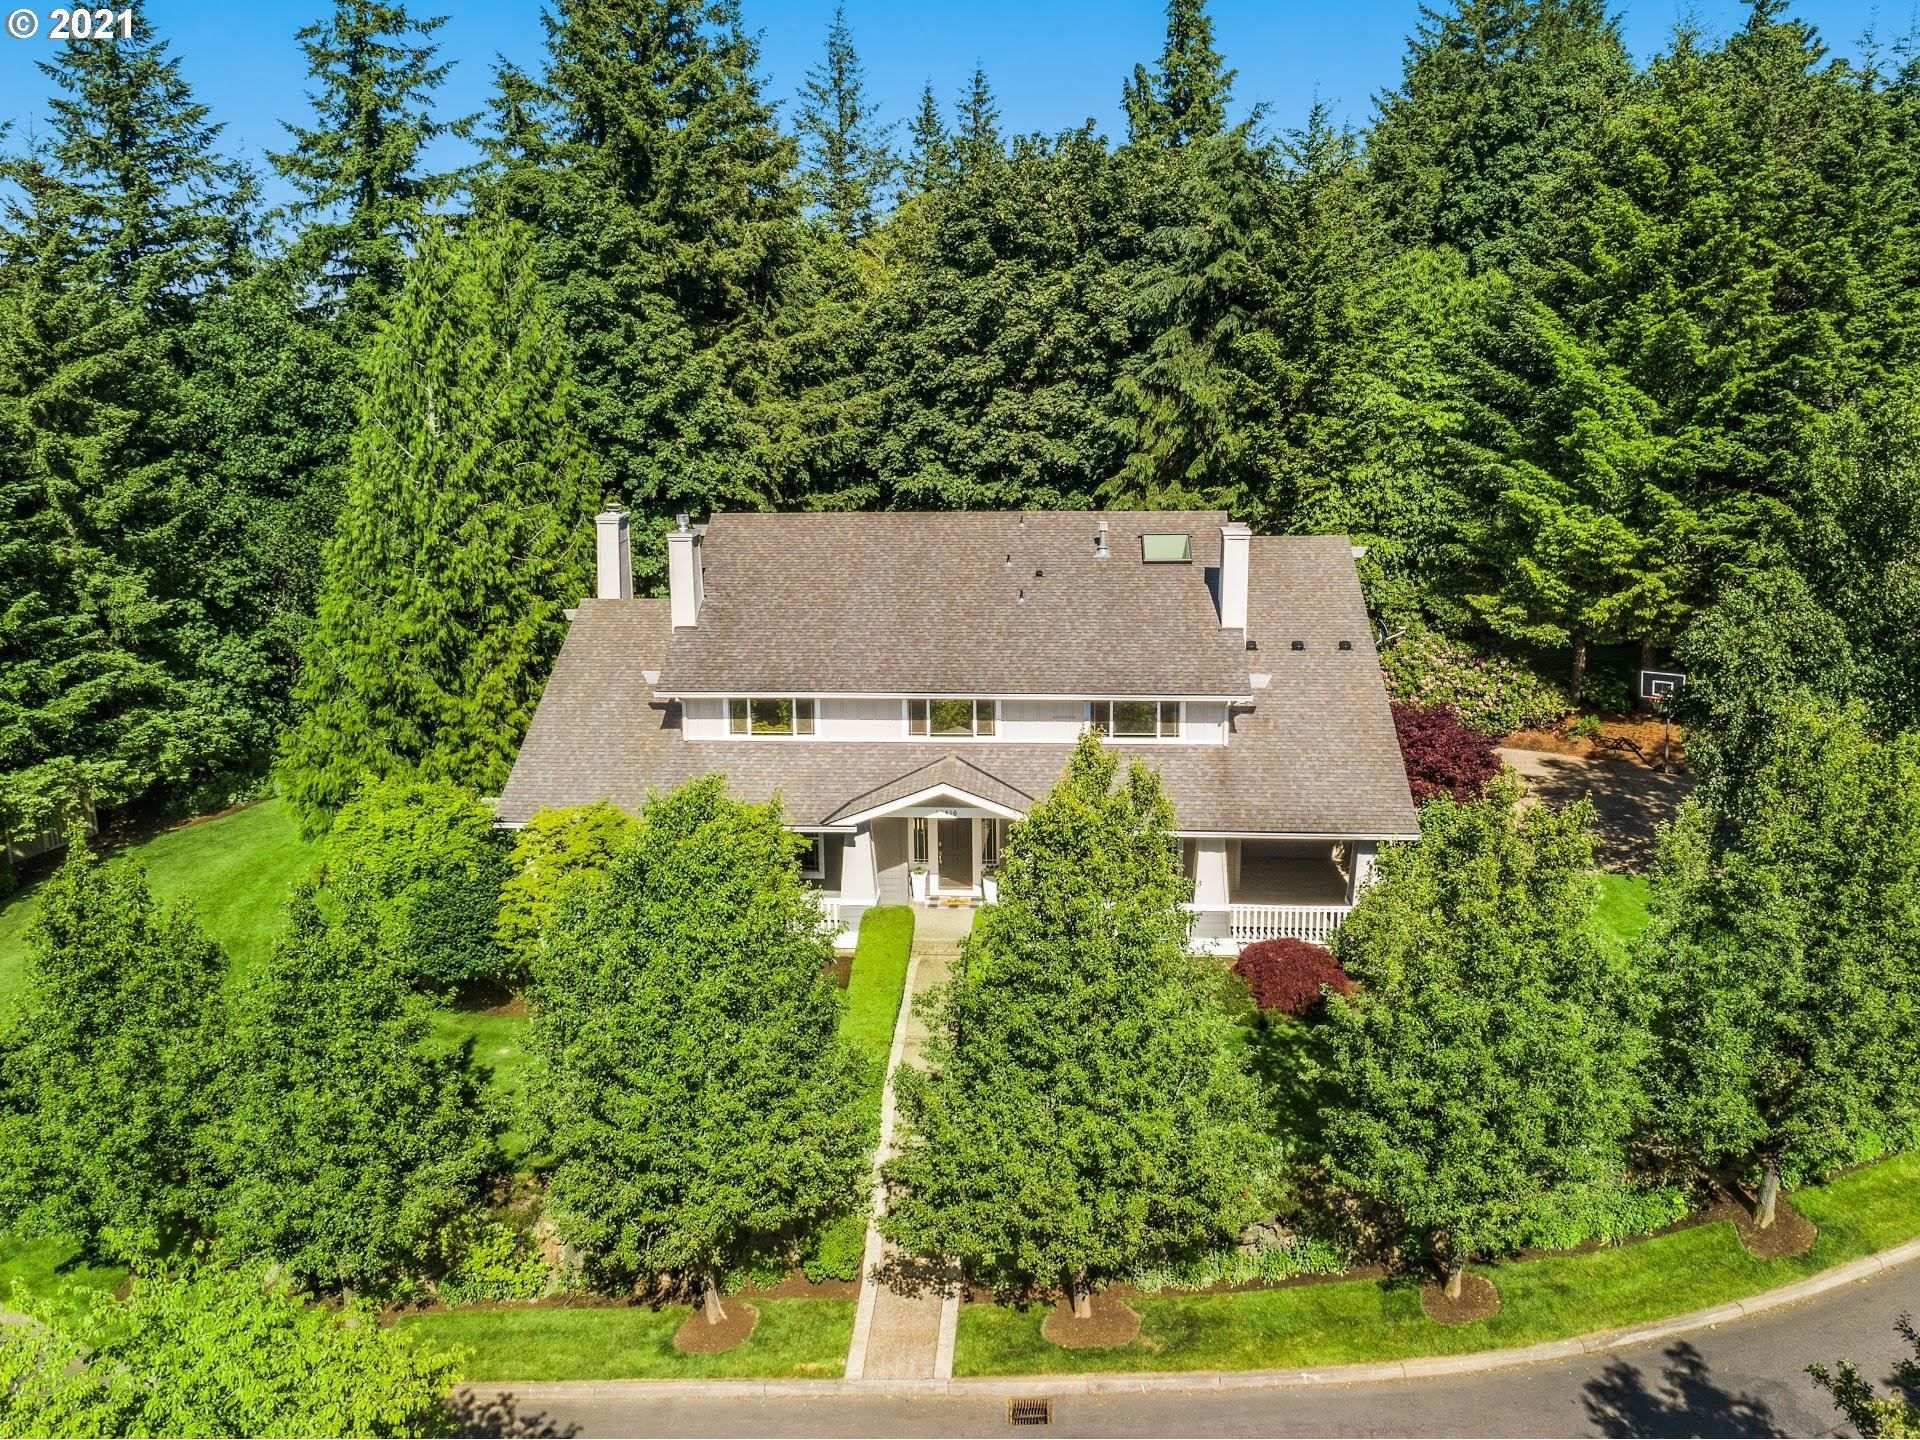 10416 NW BARCLAY TER, Portland, OR 97231 - MLS#: 21620649